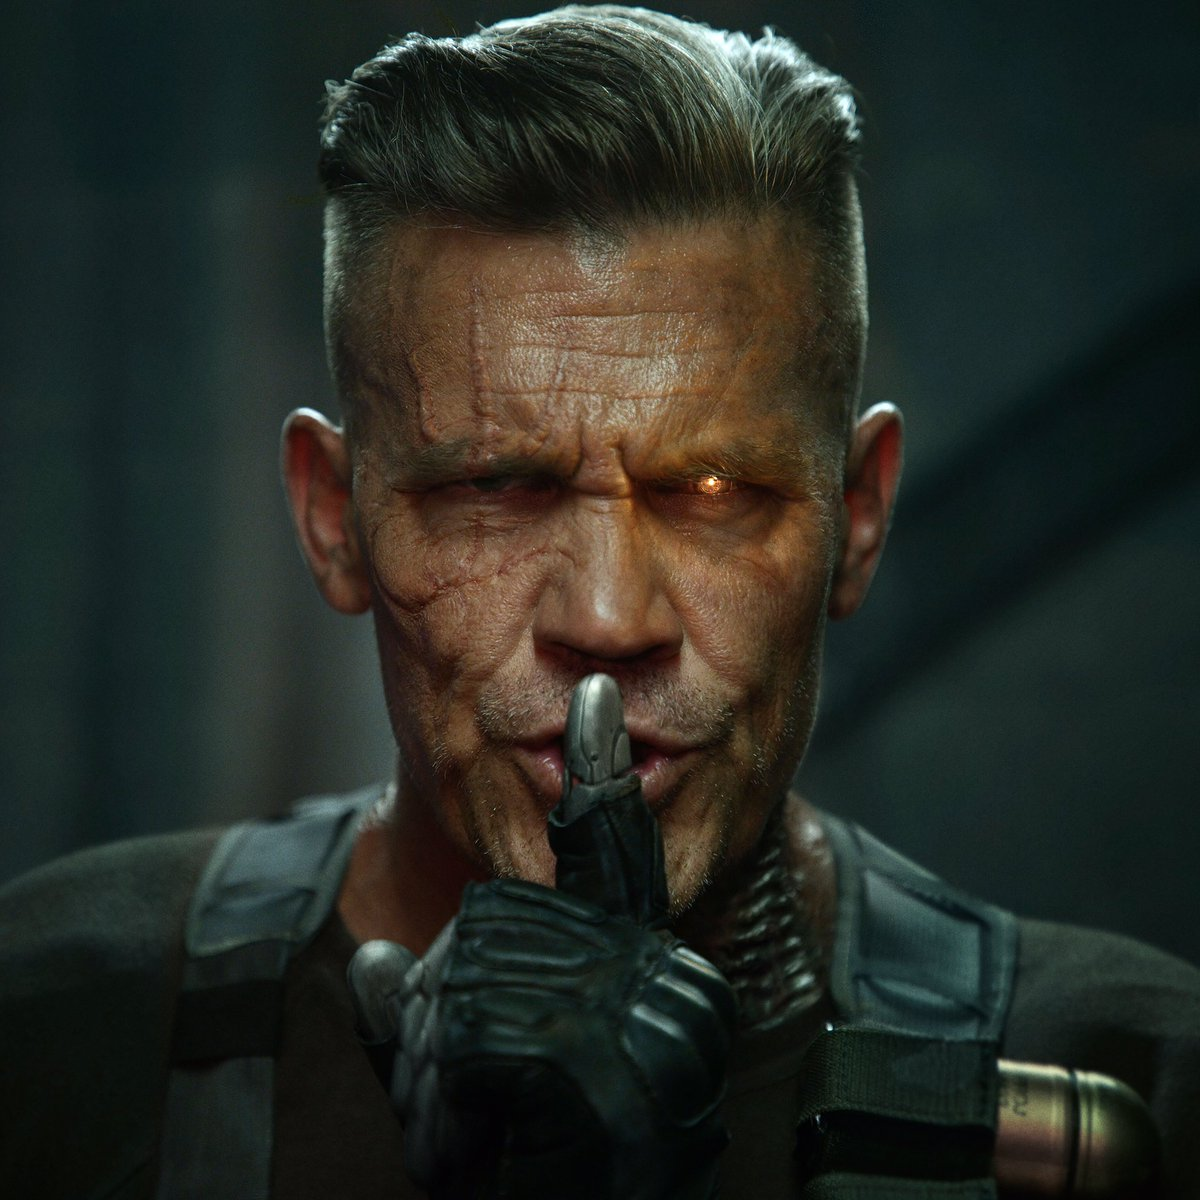 Cable Goes Insane In Stark New Deadpool 2 Photo